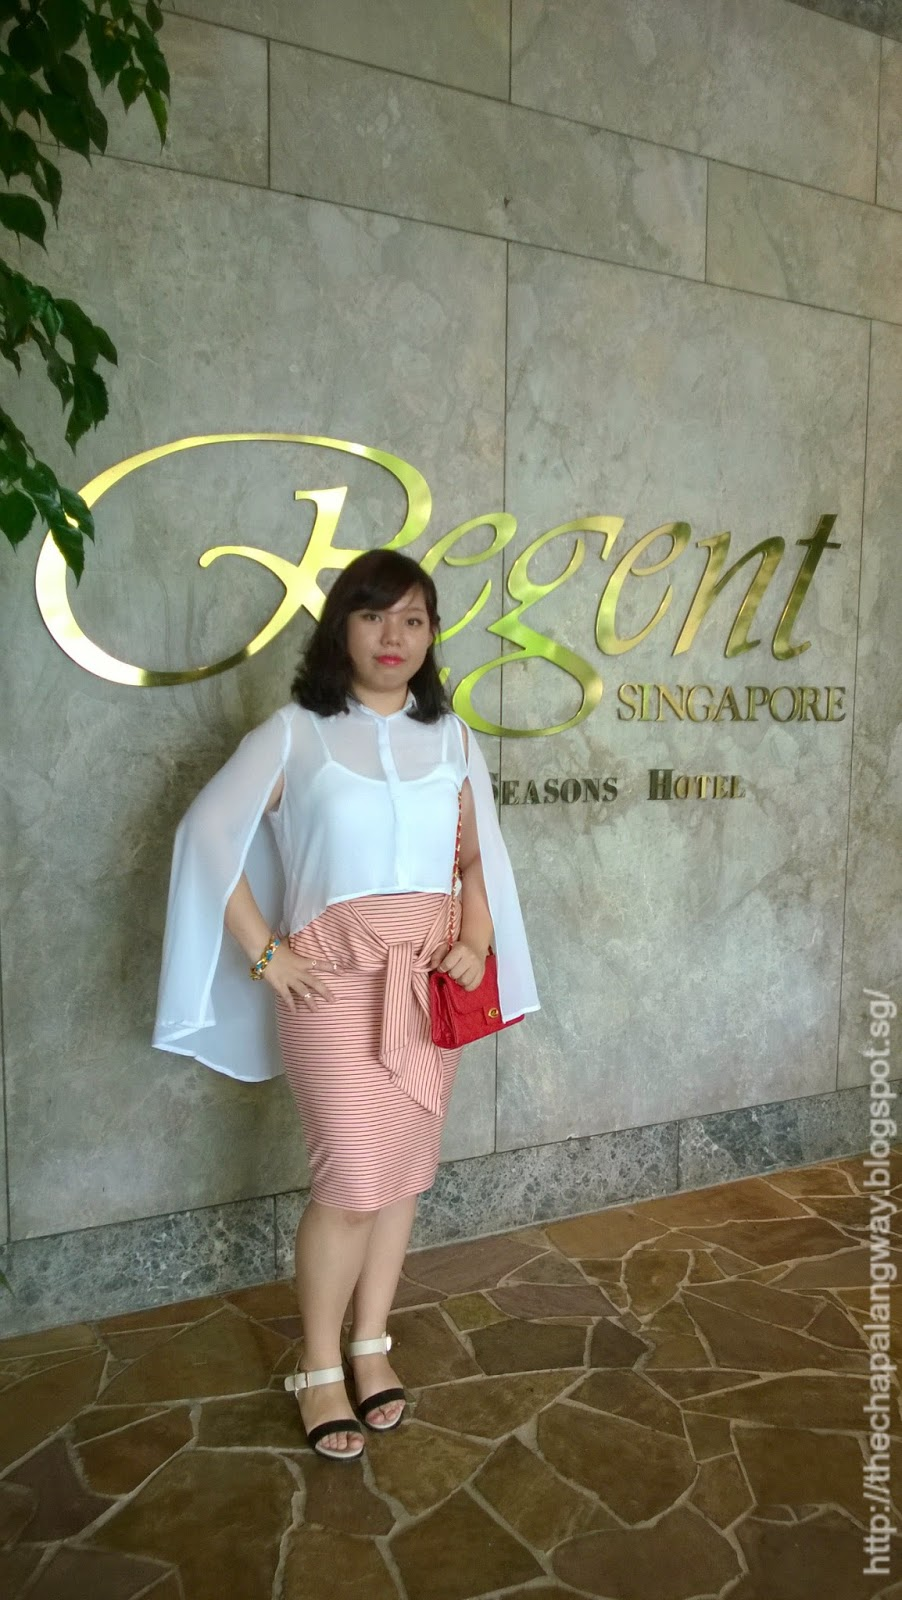 regent singapore, wedding lunch, event, ootd, casual formal chic